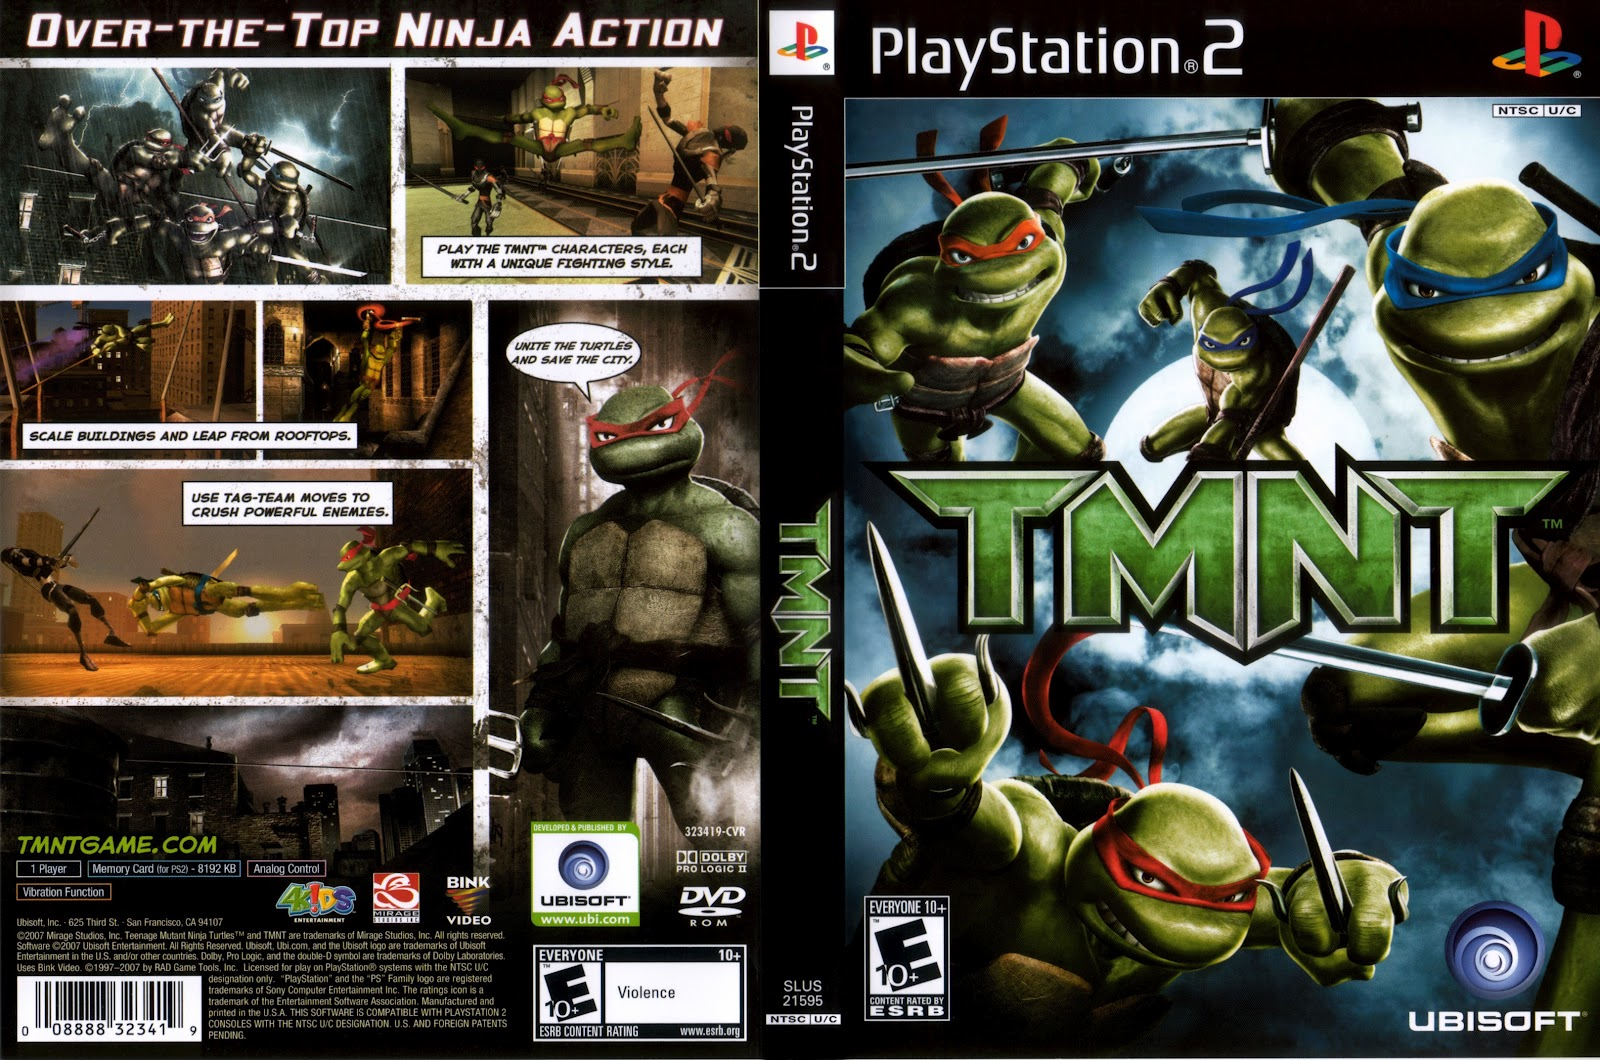 Ninja turtles games download full version games free download each turtle has a special attack